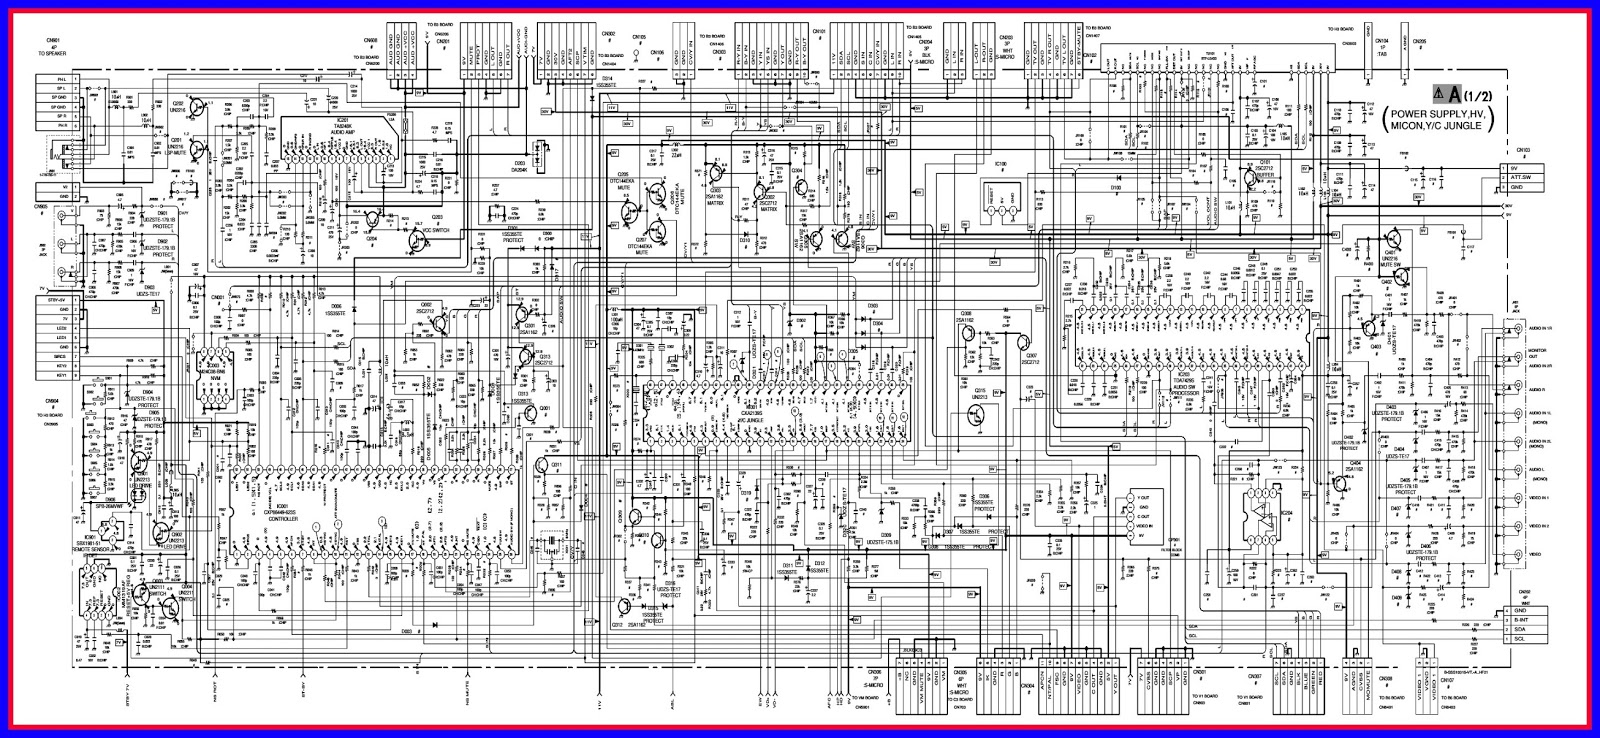 Phenomenal Sony Tv Circuit Diagram Online Wiring Diagram Wiring Cloud Oideiuggs Outletorg